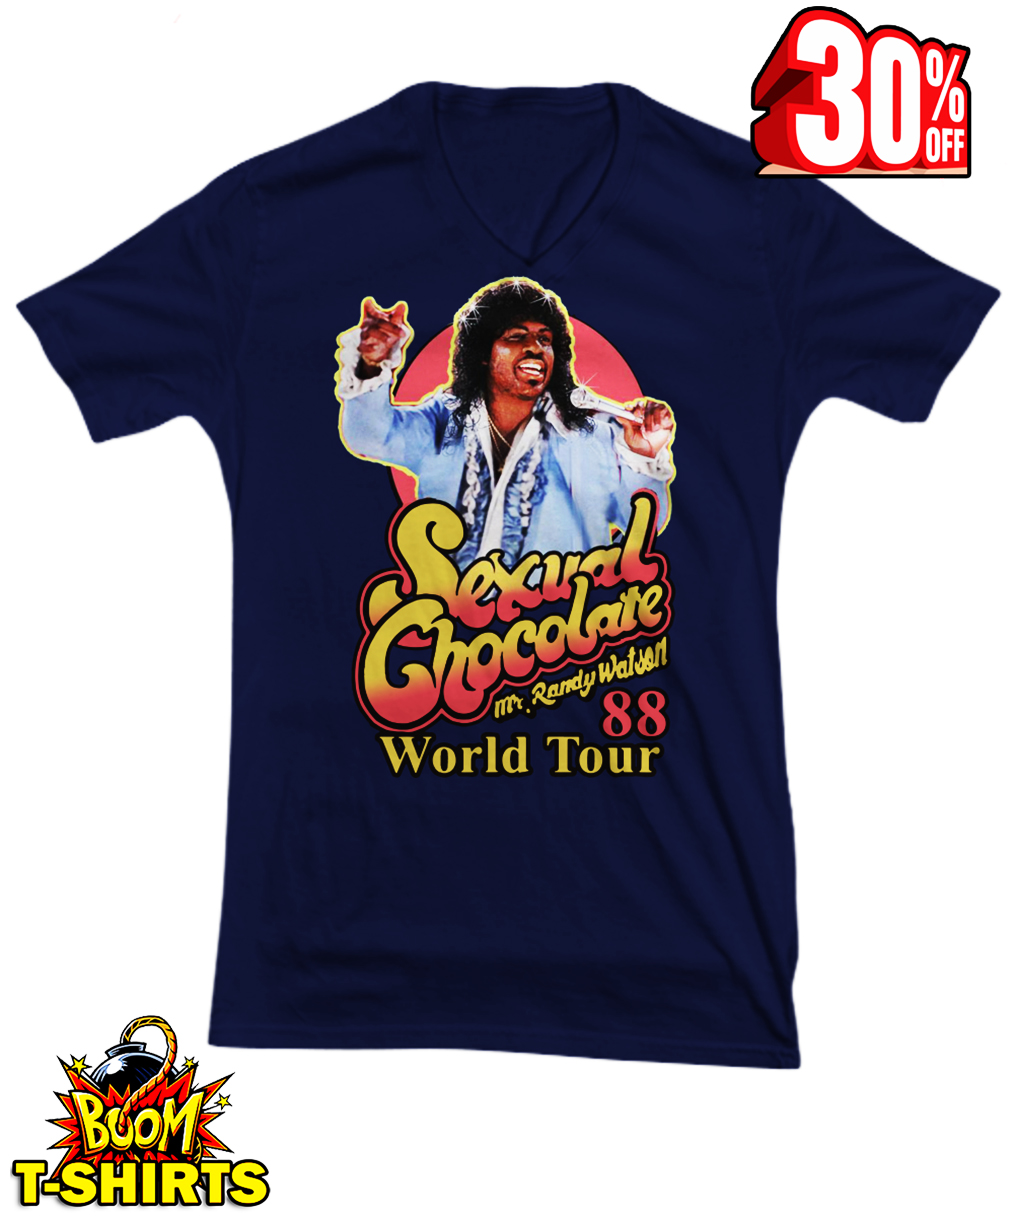 Sexual Chocolate Mr Randy Watson World Tour 88 v-neck tee